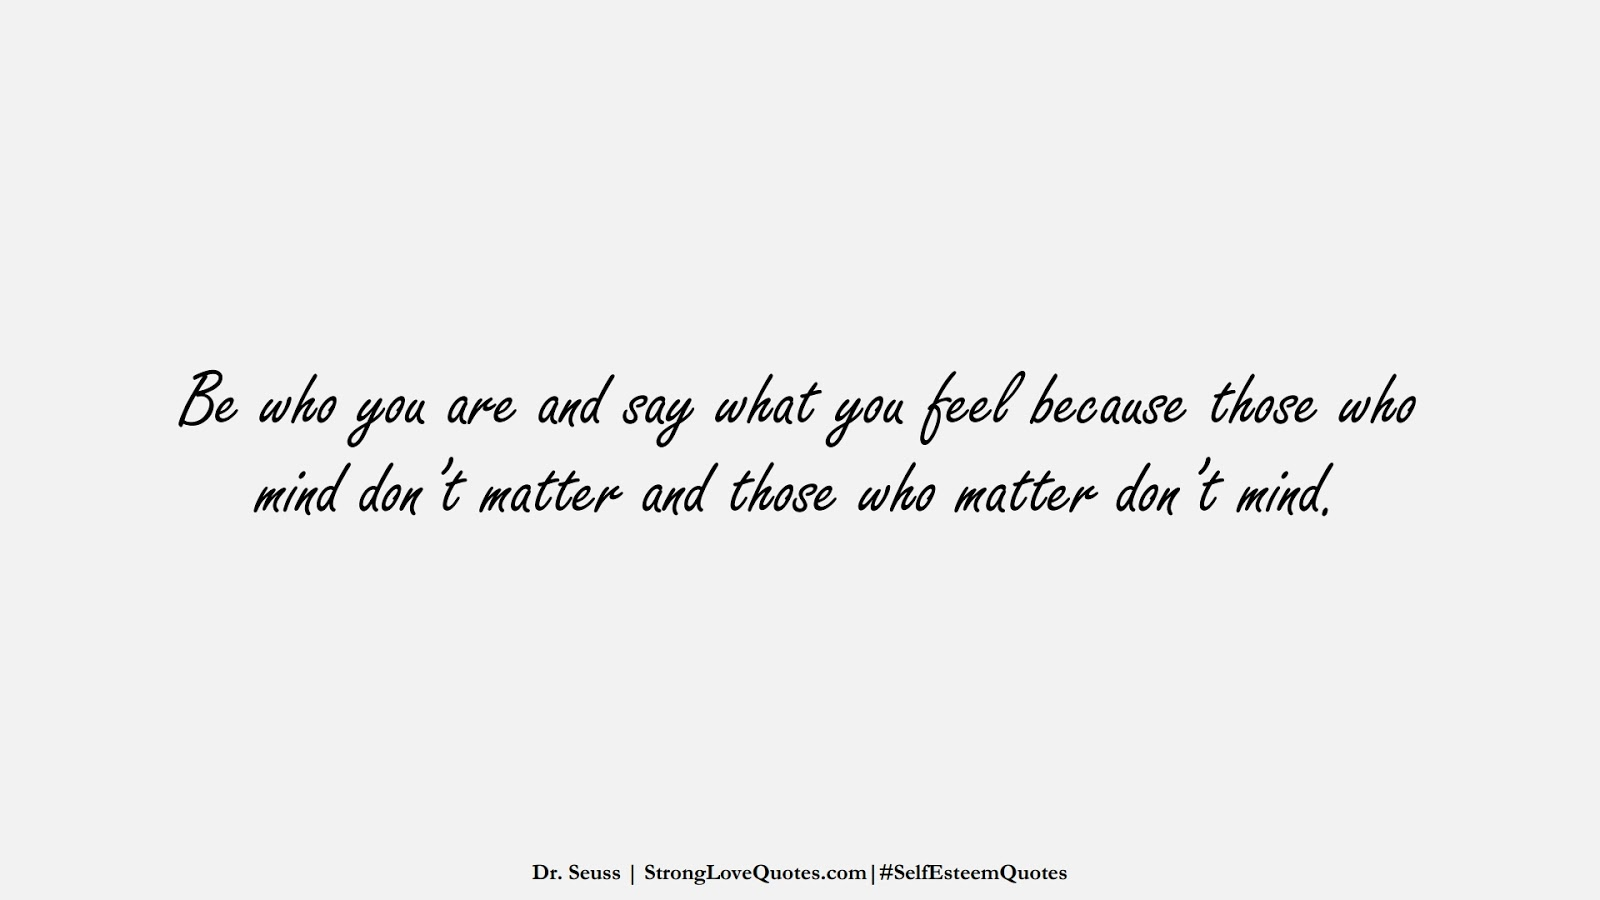 Be who you are and say what you feel because those who mind don't matter and those who matter don't mind. (Dr. Seuss);  #SelfEsteemQuotes